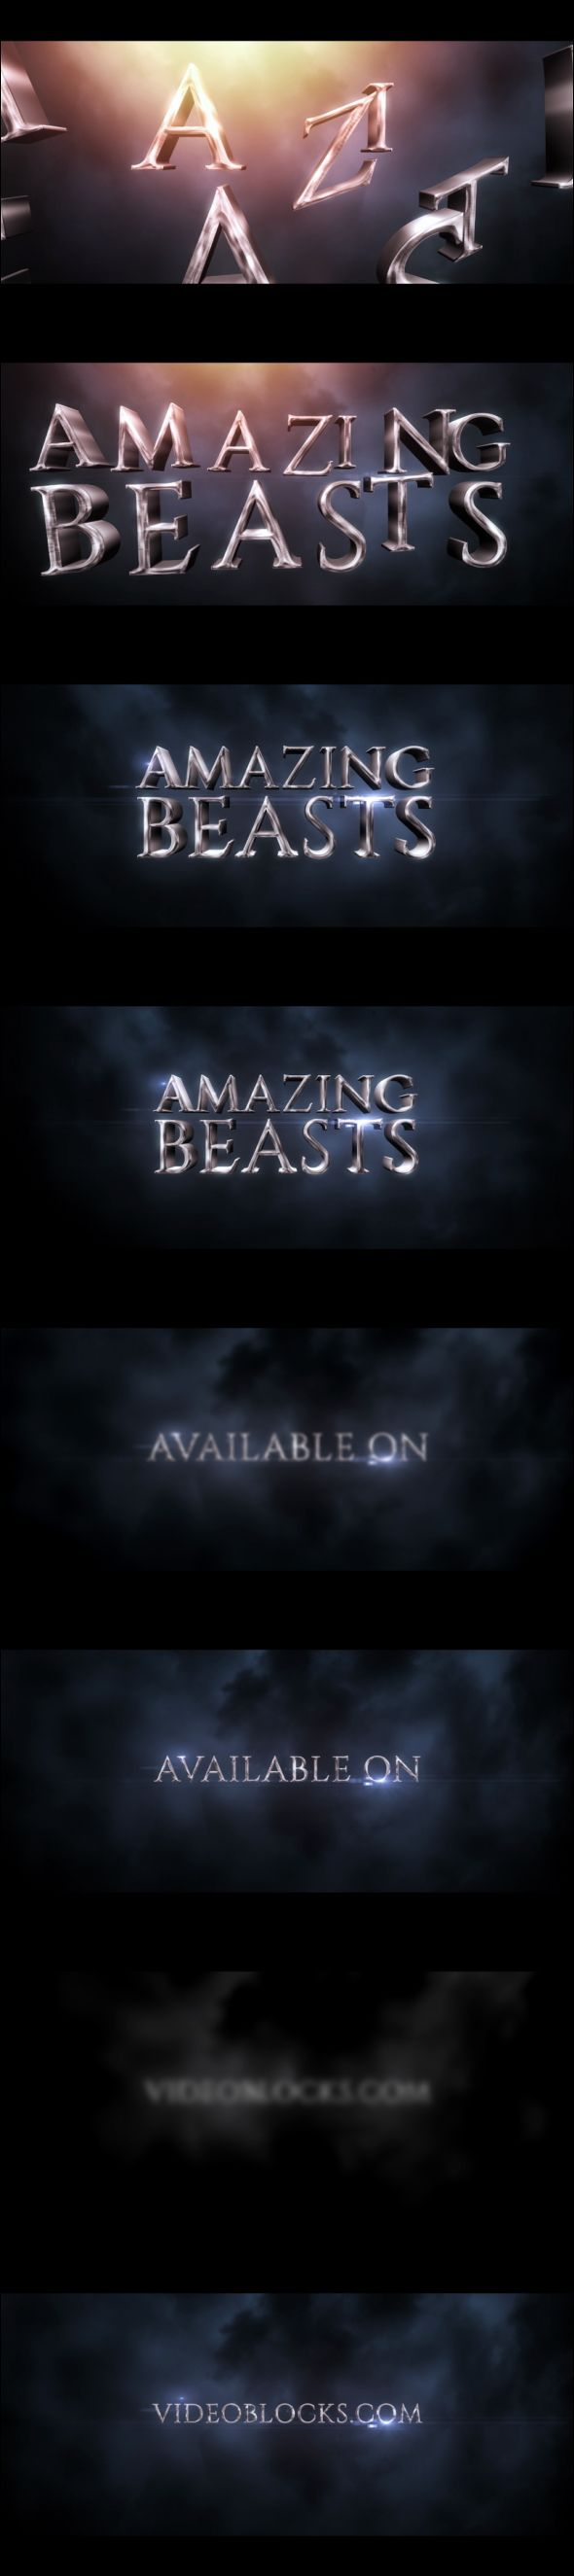 Amazing Beasts Harry Potter Lookalike Titles